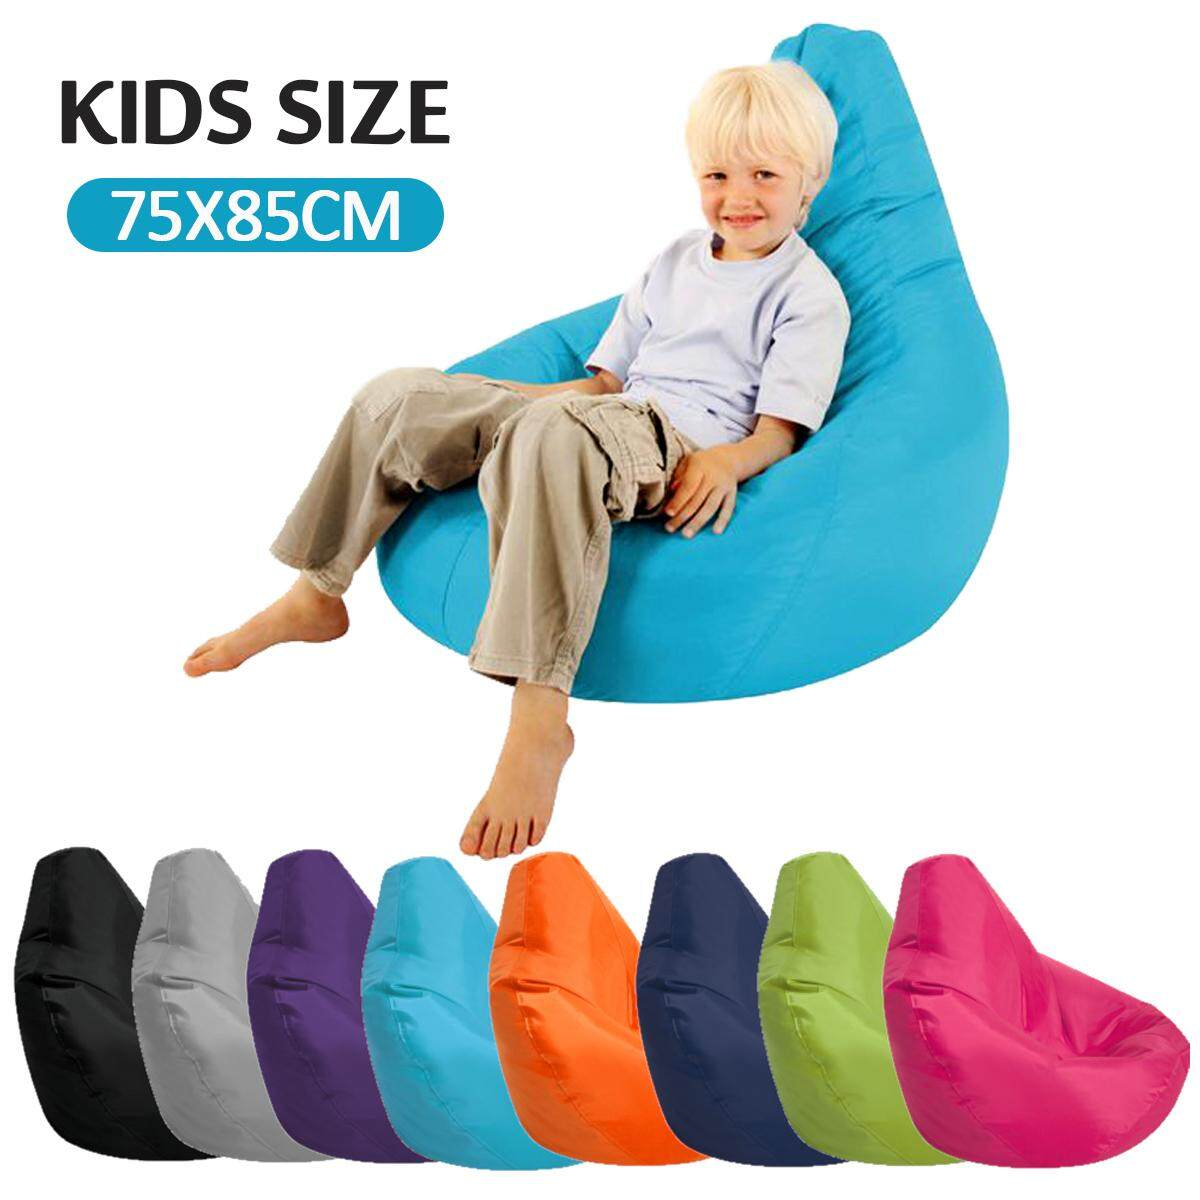 Adult Size Bean Bag Chair Kids Bean Bag Cover Chair Seat Gamer Recliner Waterproof Outdoor Indoor Garden Bean Bag Chair Indoor Outdoor Gamer Beanbag Seat Adult And Kids Sizes